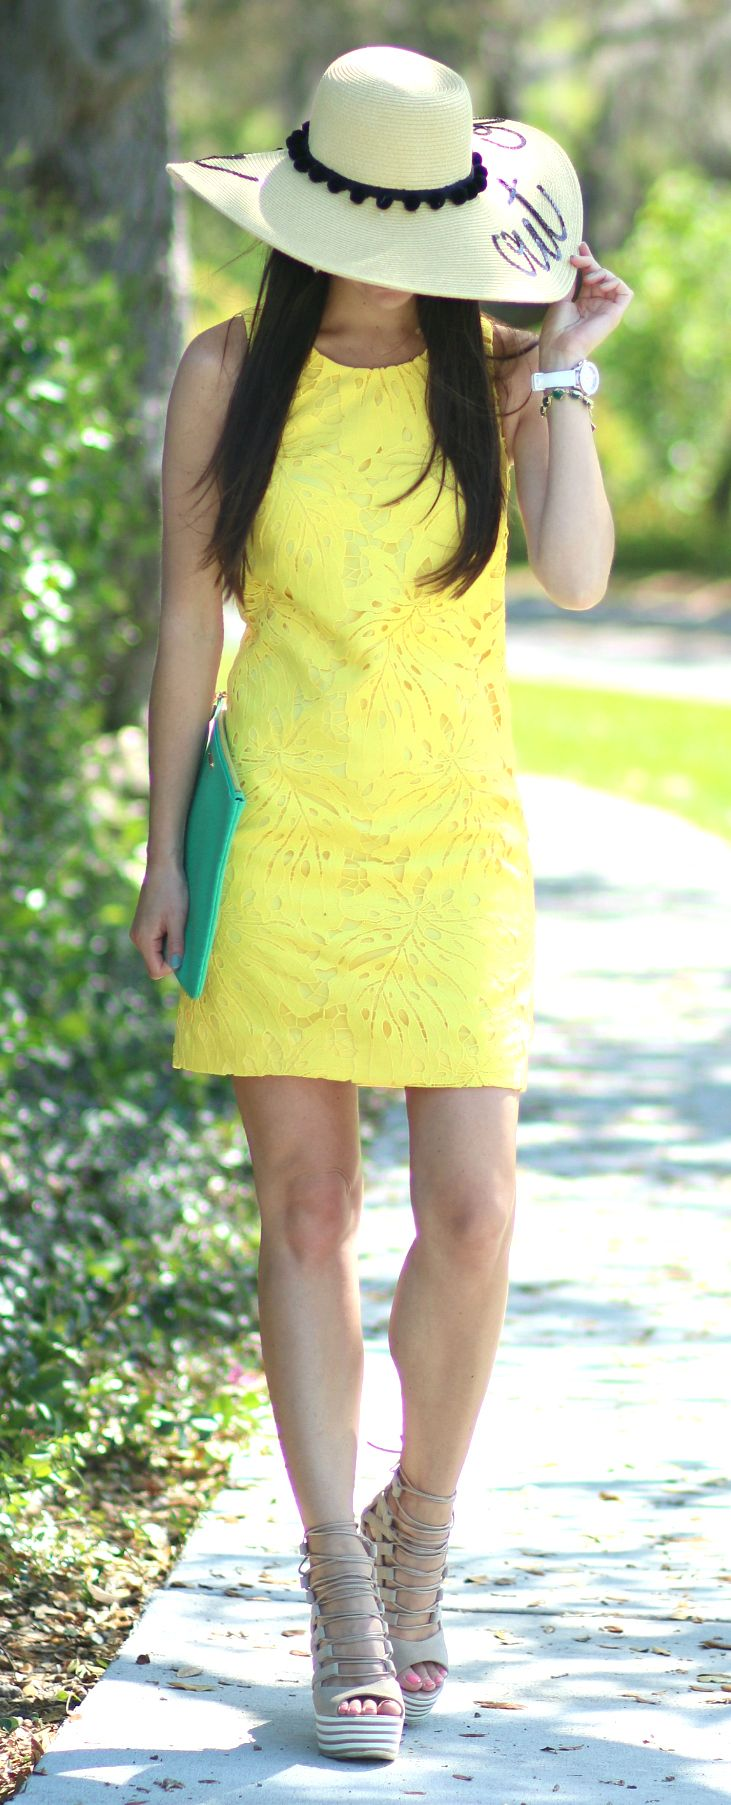 Banana Republic yellow lace shift dress with gladiator wedges, a green GiGi New York Uber clutch, and an Out of Office floppy sun hat... fun office outfit idea that can be dressed up or down with different shoes and accessories | Banana Republic Summer Style: Yellow Leaf Pattern Shift Dress by Stephanie Ziajka from Diary of a Debutante